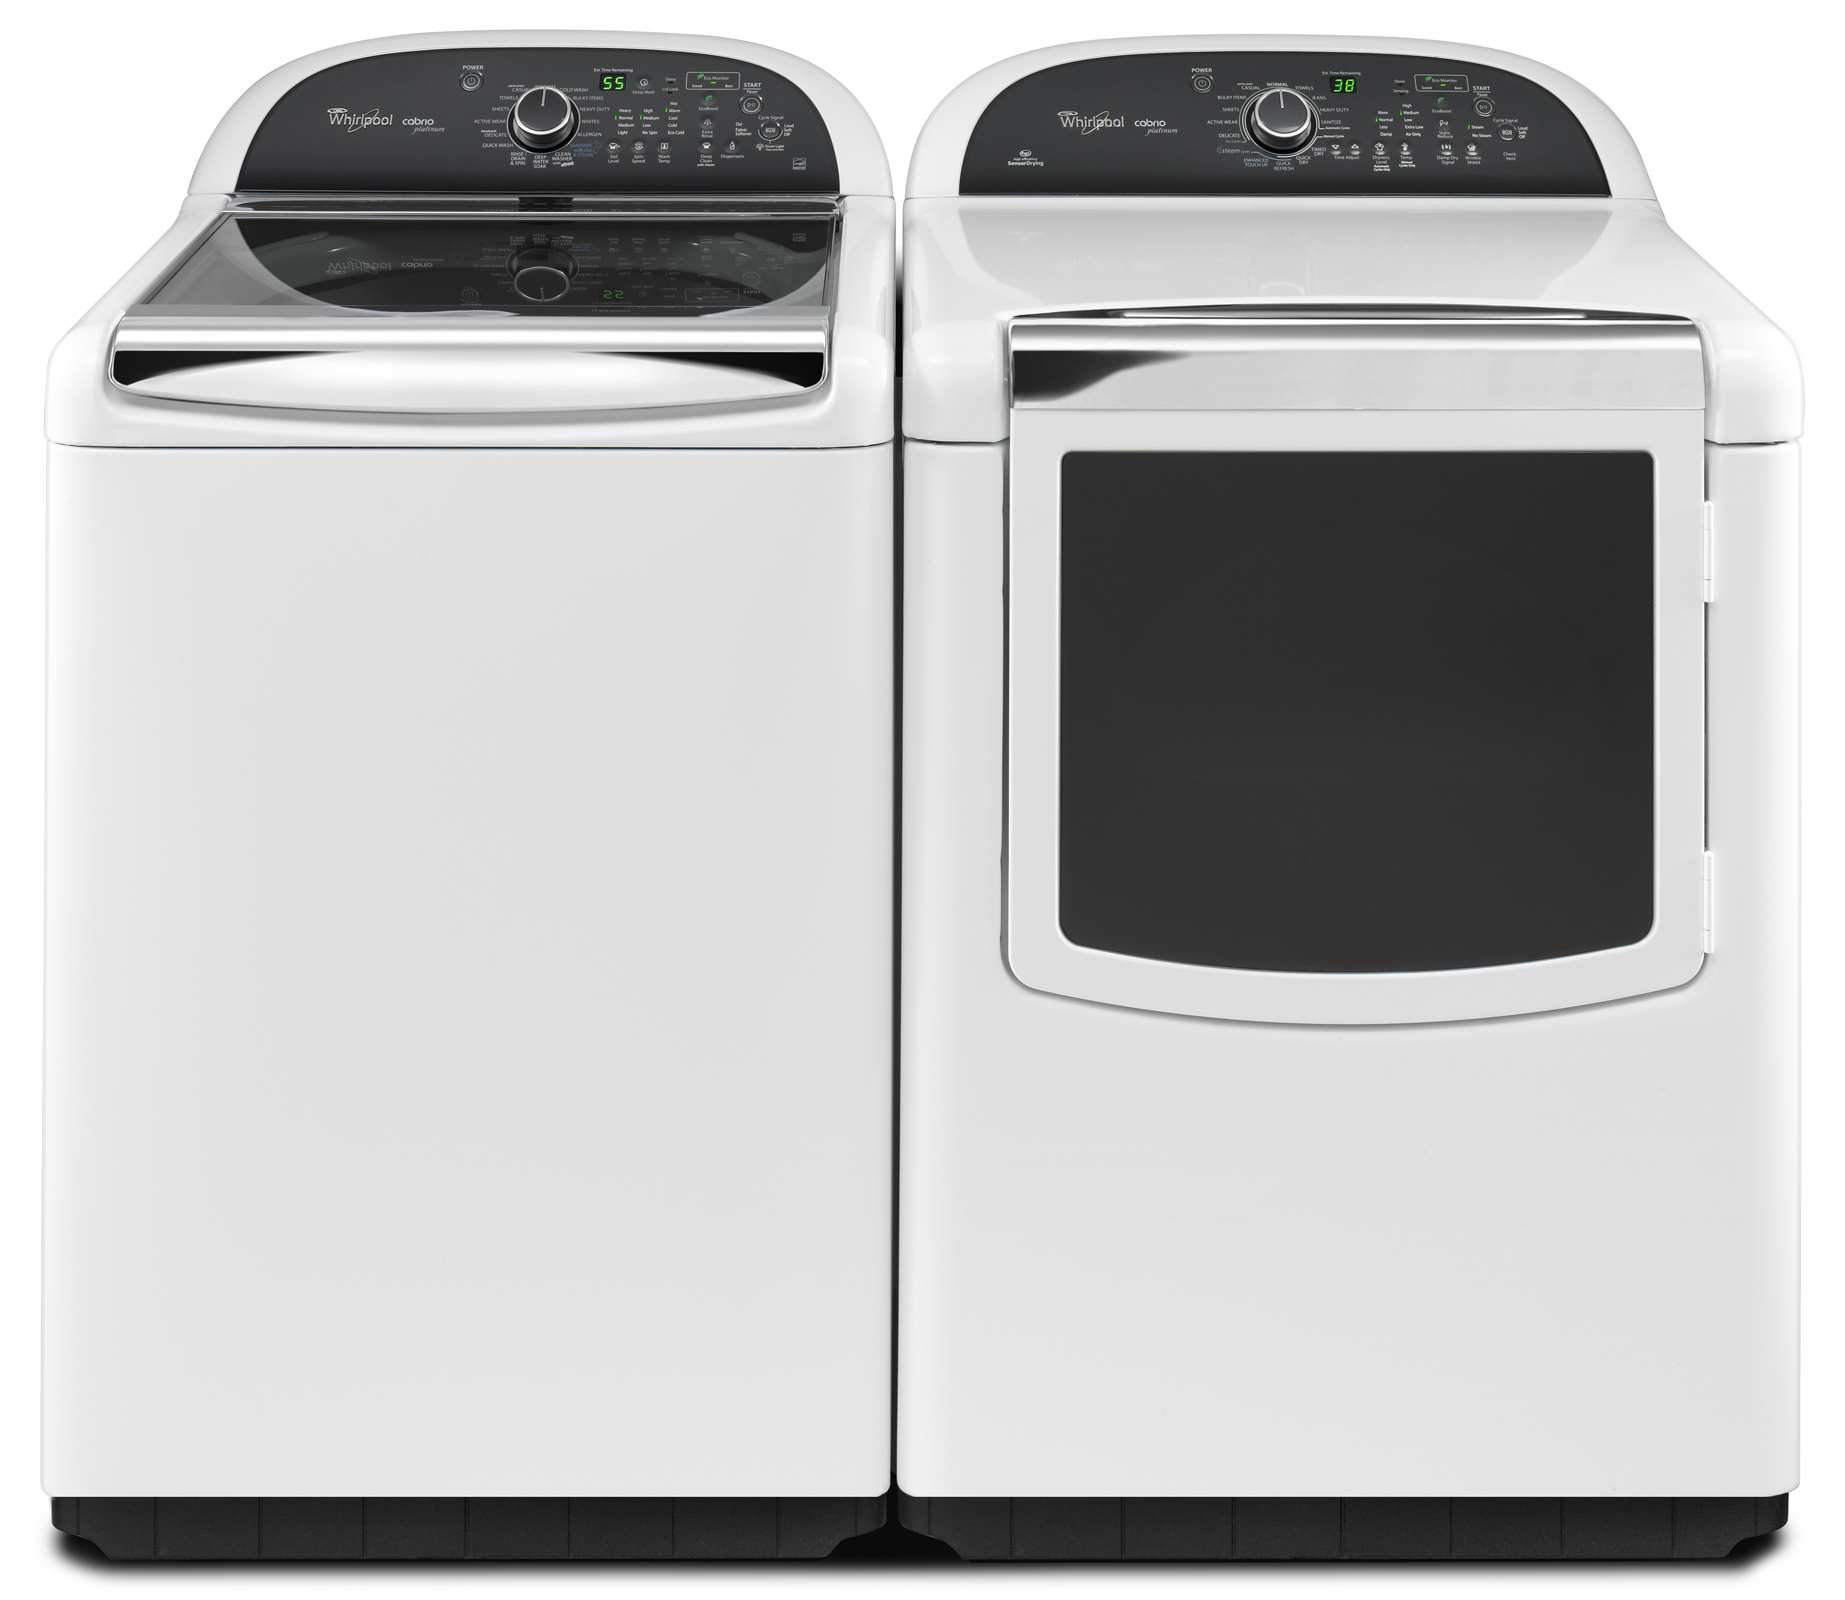 Whirlpool 4.8 cu. ft. Cabrio® Platinum HE Top-Load Washer w/ Sanitary Cycle - White